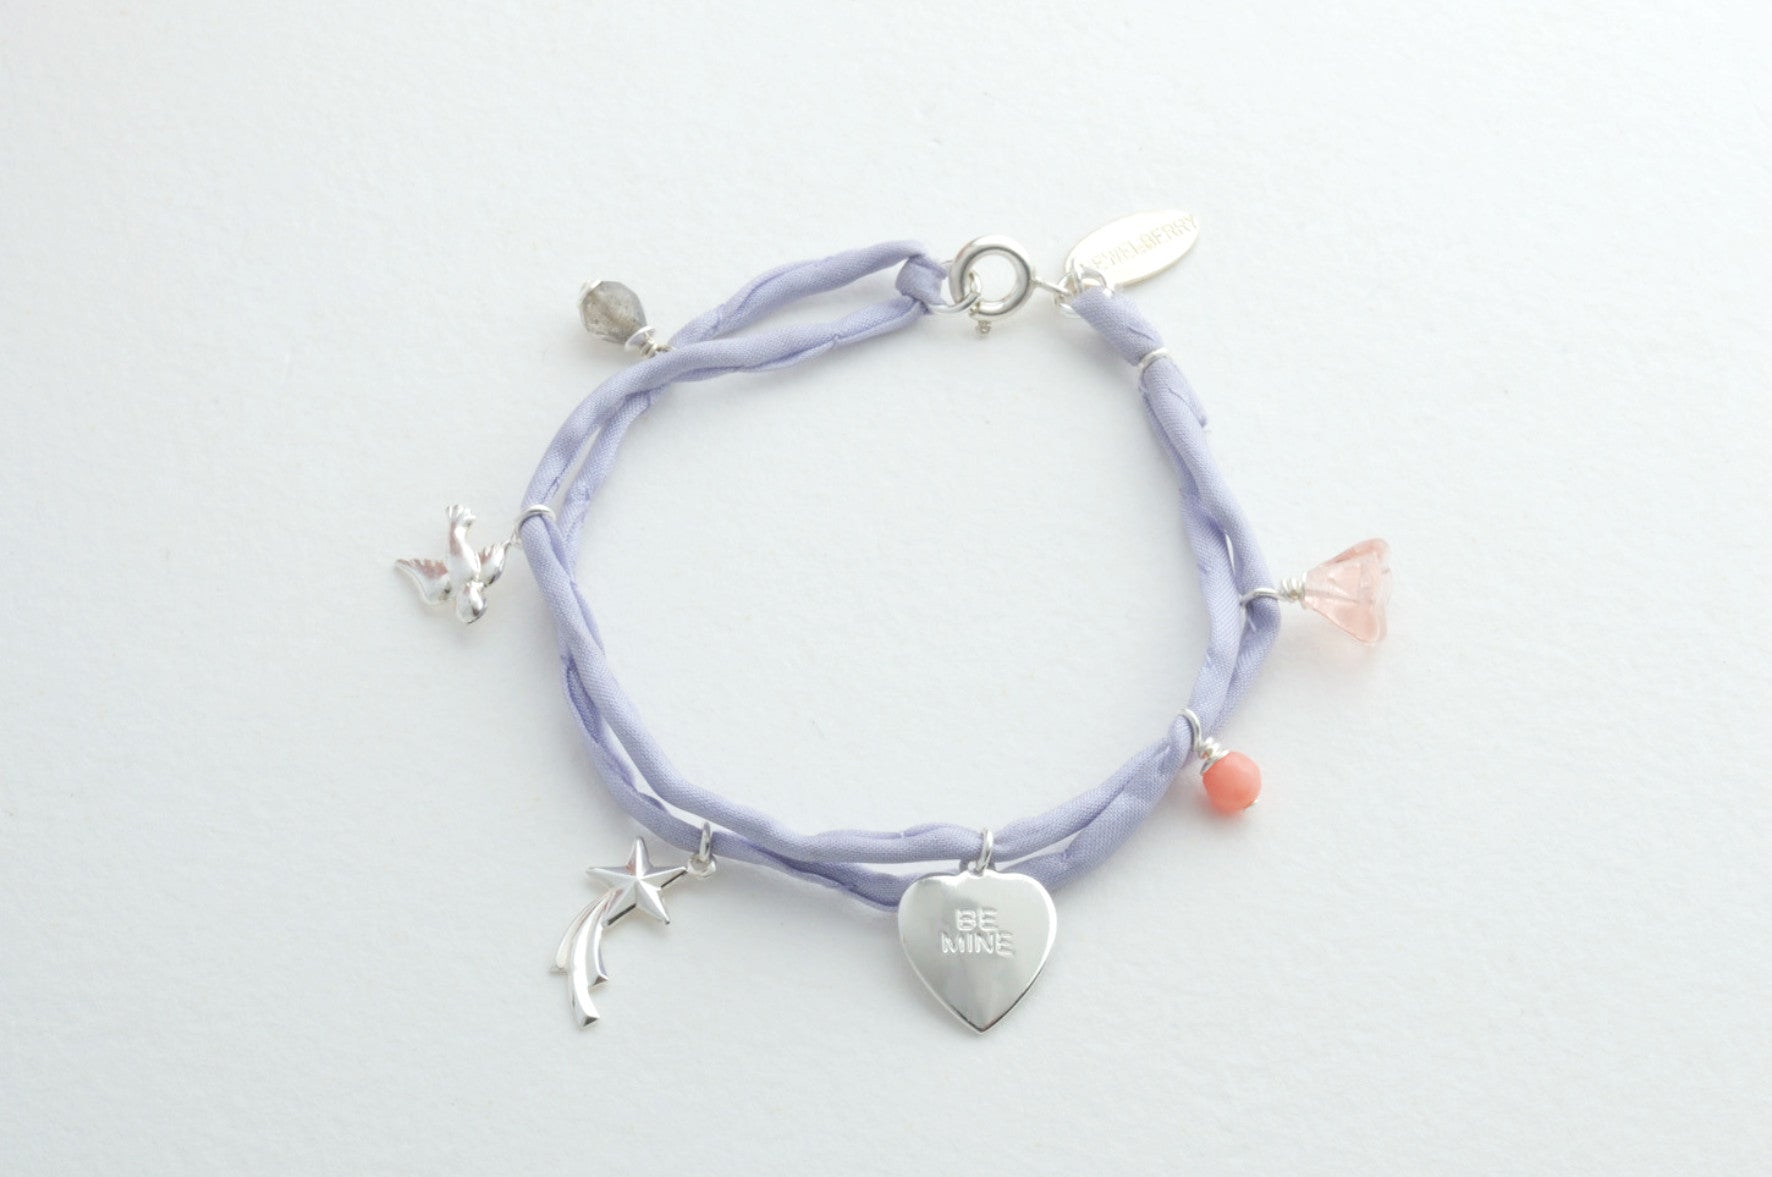 Armband Silk BIRD RISING STAR BE MINE versilbert